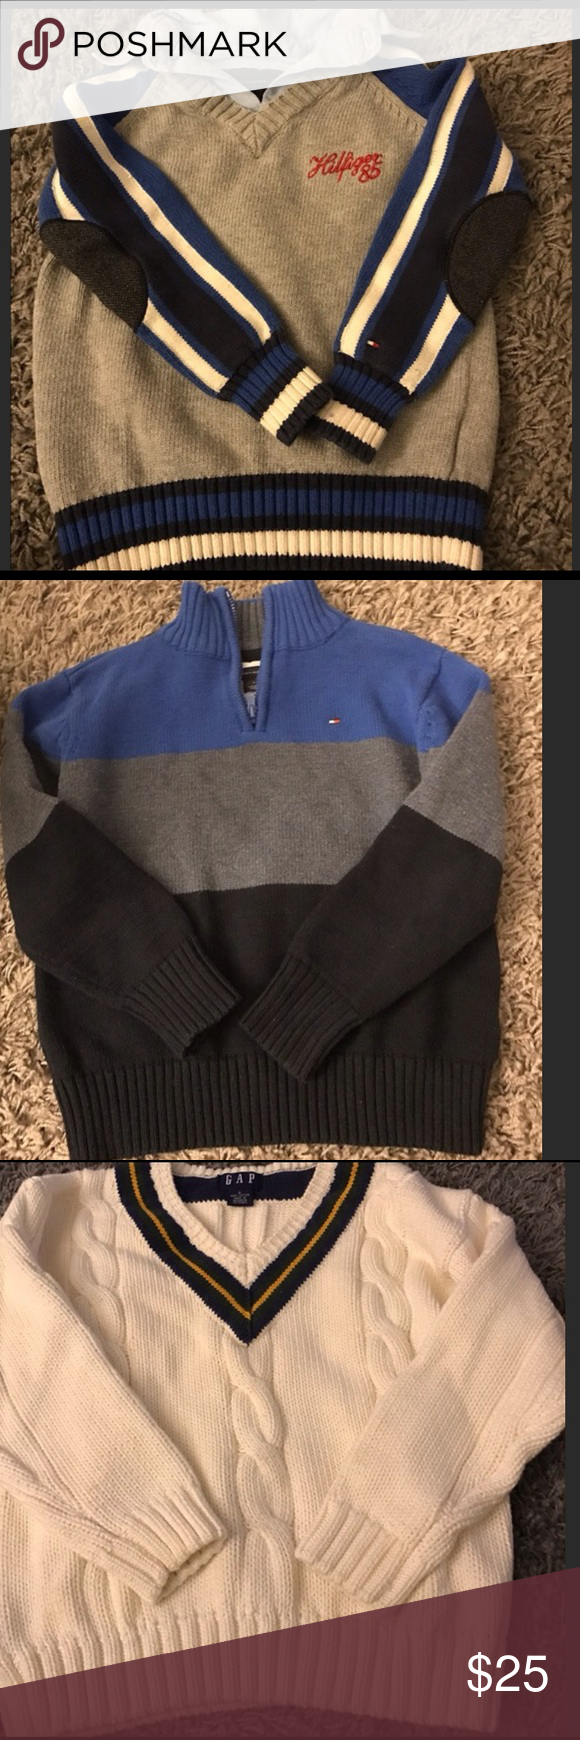 🍭Boys 4 Sweater Bundle 🍭 Excellent condition boys 4 sweater bundle! Tommy Hilfiger collar and patches on sleeve size 5. Tommy Hilfiger striped size 6. Gap size S. Children's Place size S. Shirts & Tops Sweaters